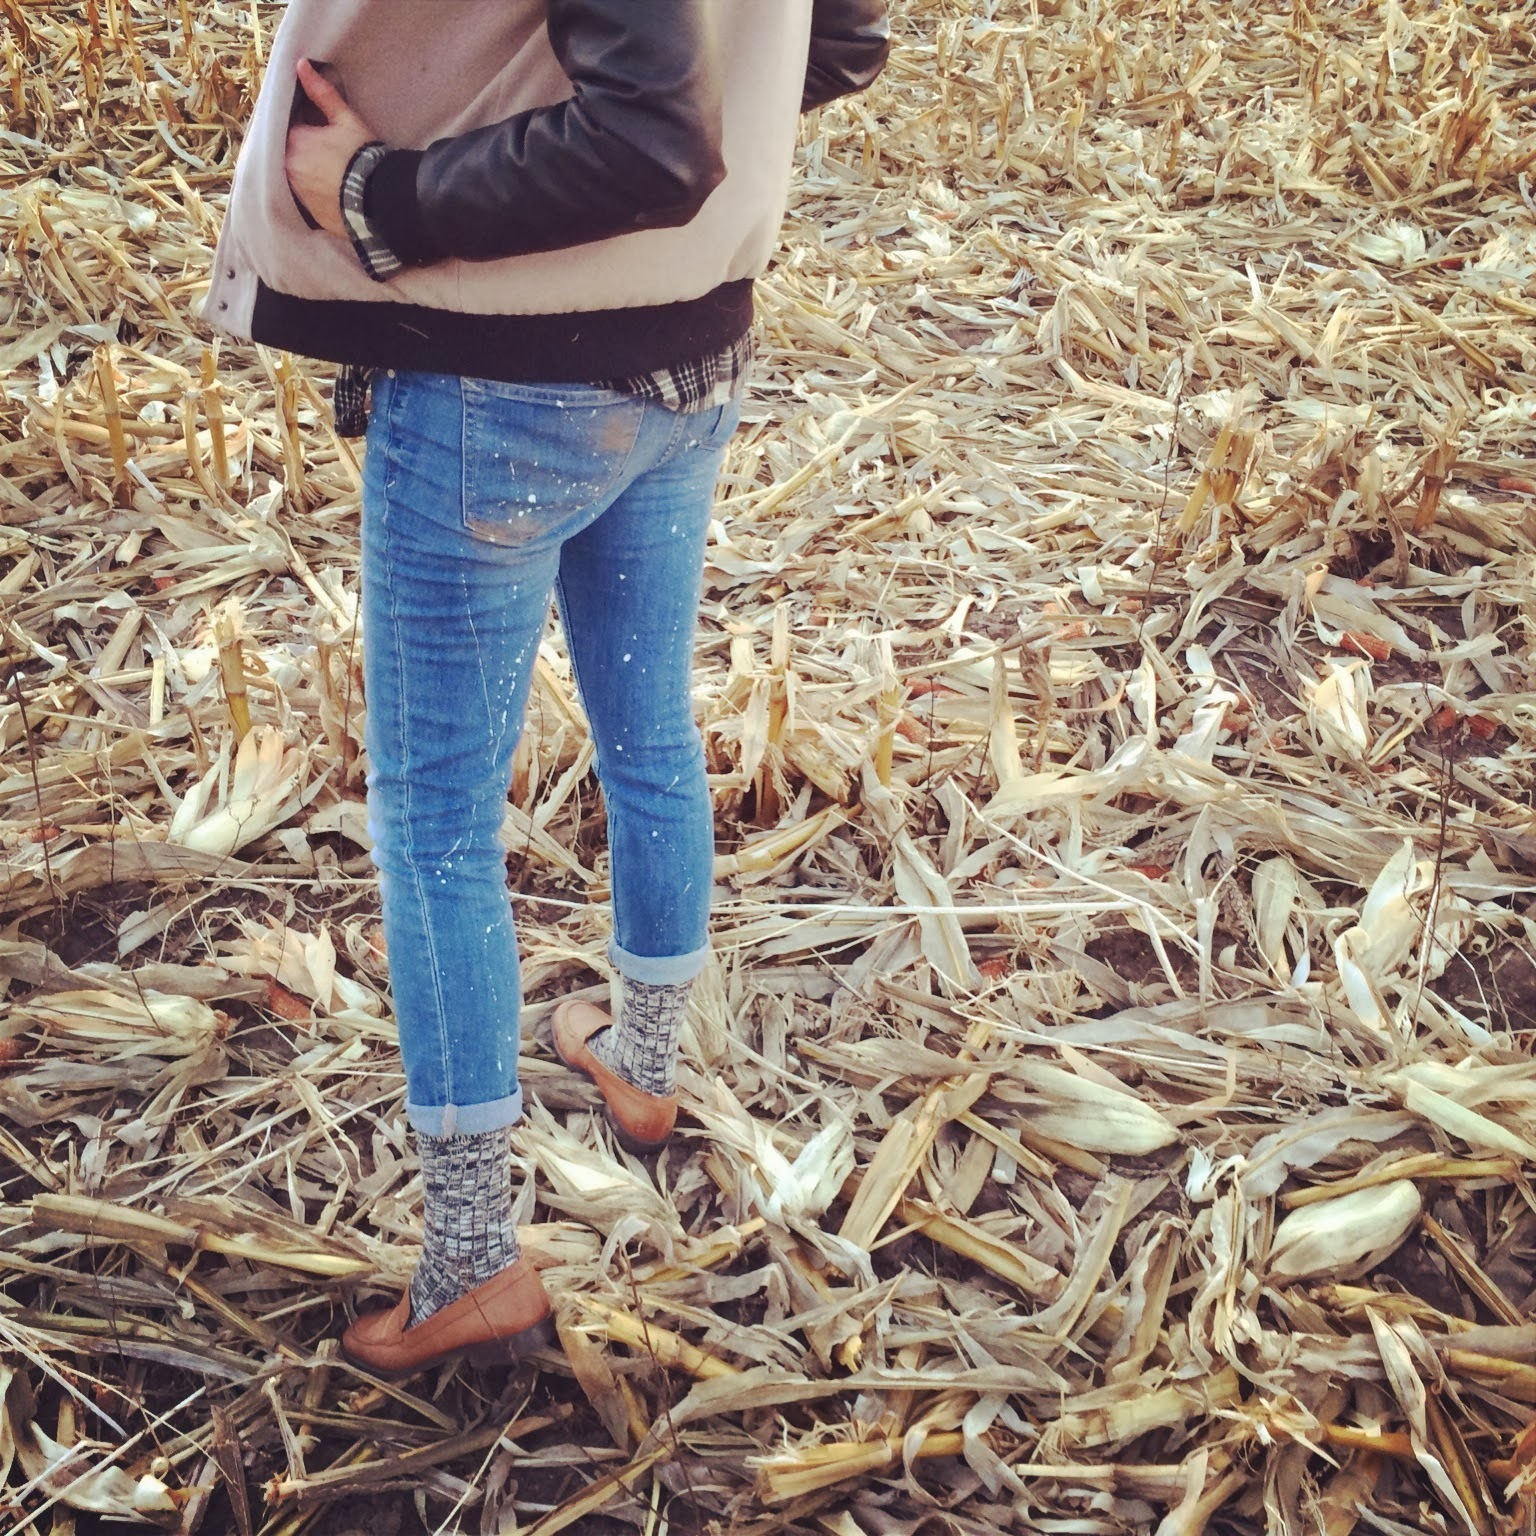 Nebraska, cornfield, Madewell, Topshop, Plaid, Denim, Fashion, Casual, Roots, Marled, Penny Loafers